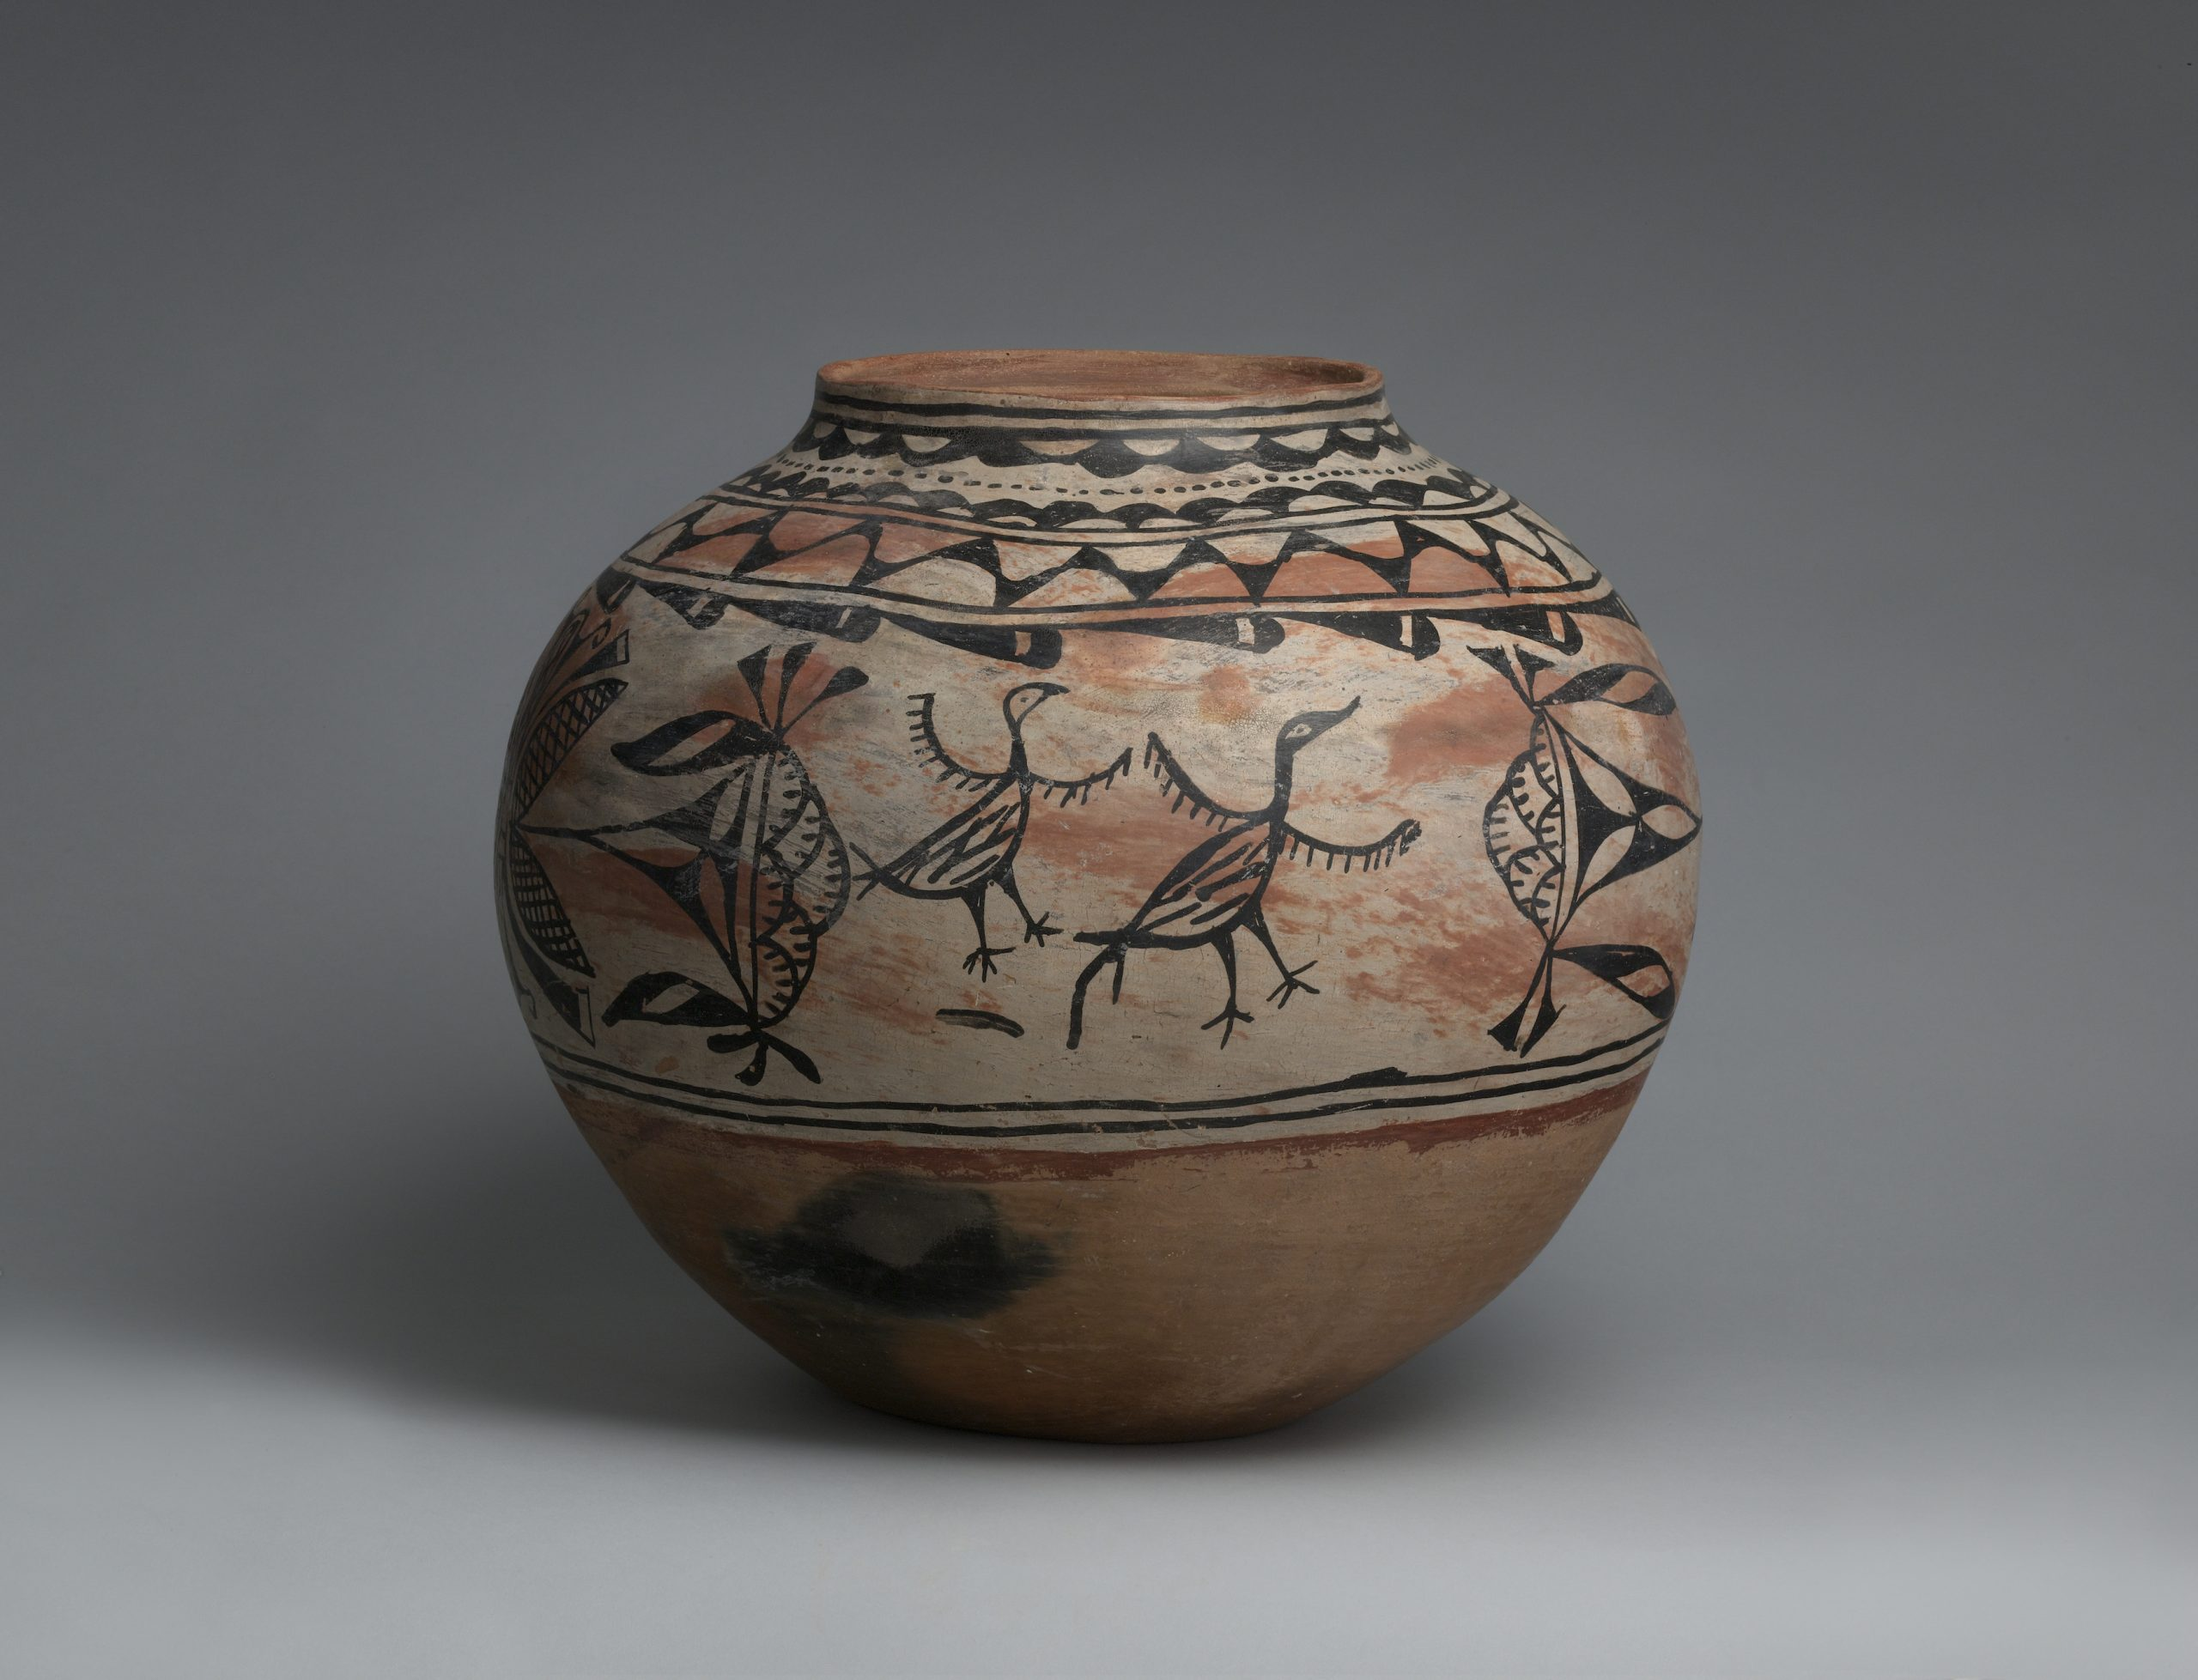 A Tesuque jar with stylized bird designs.